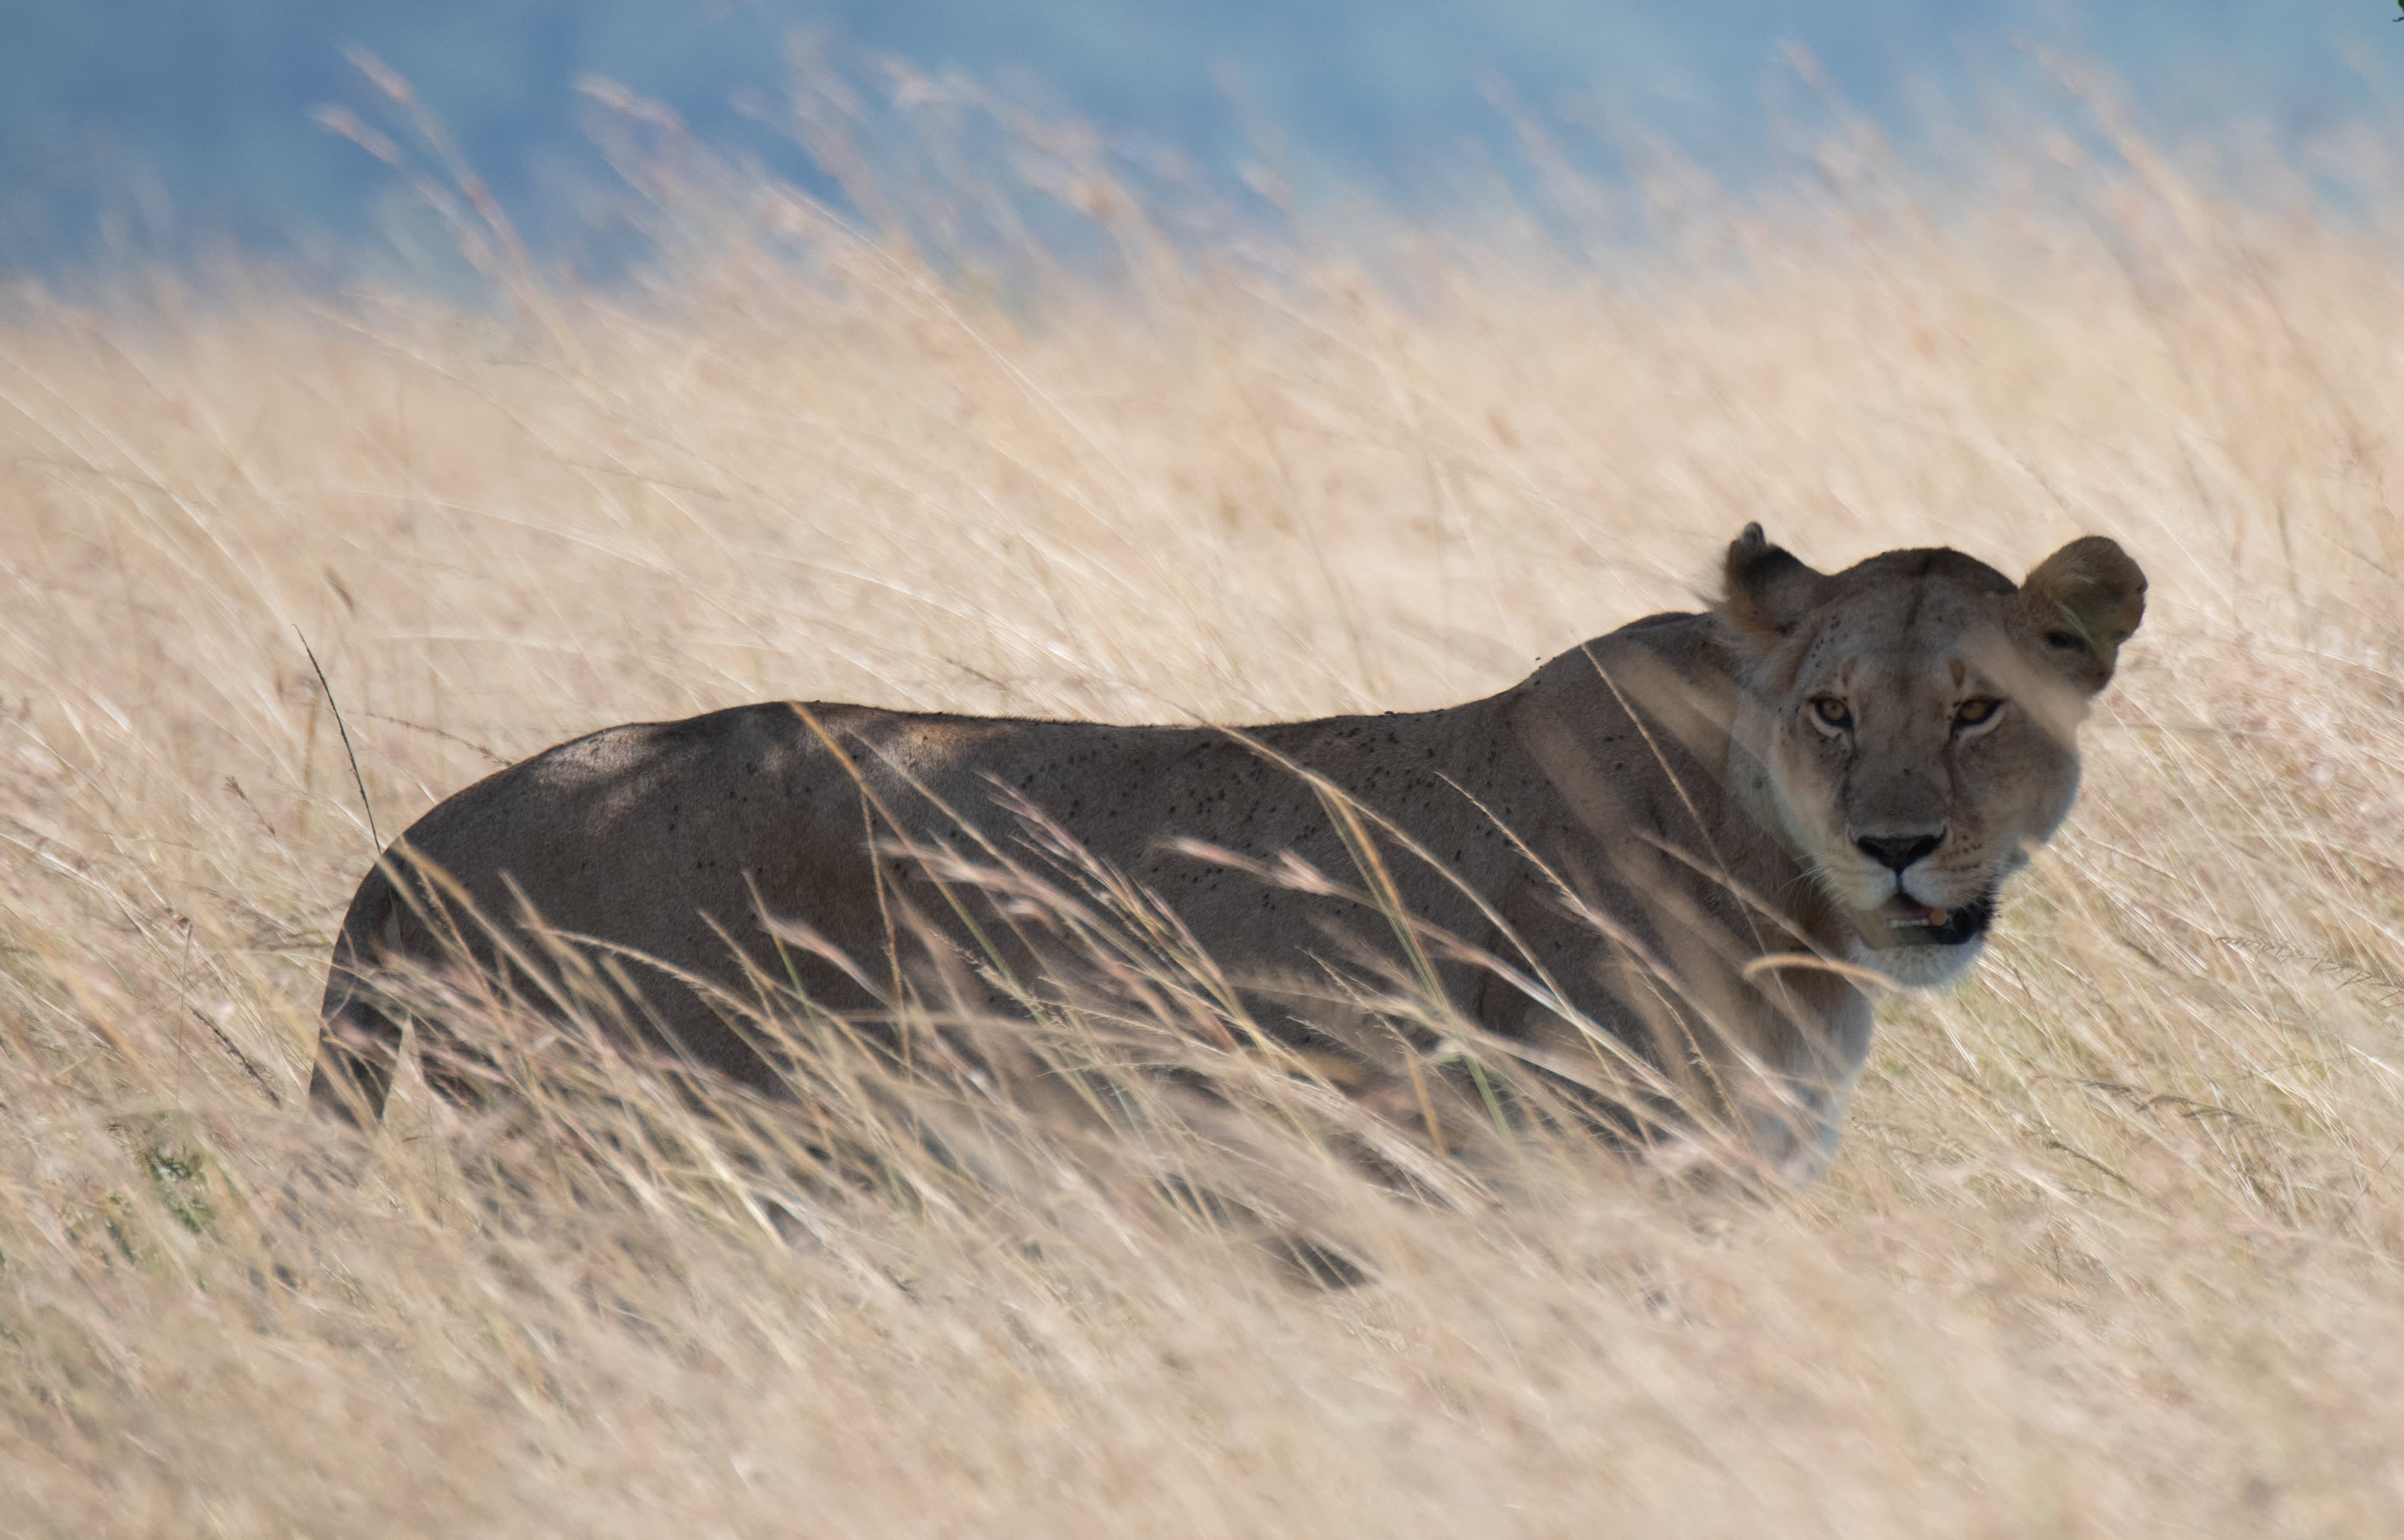 The gentle wild sides of the Mara.